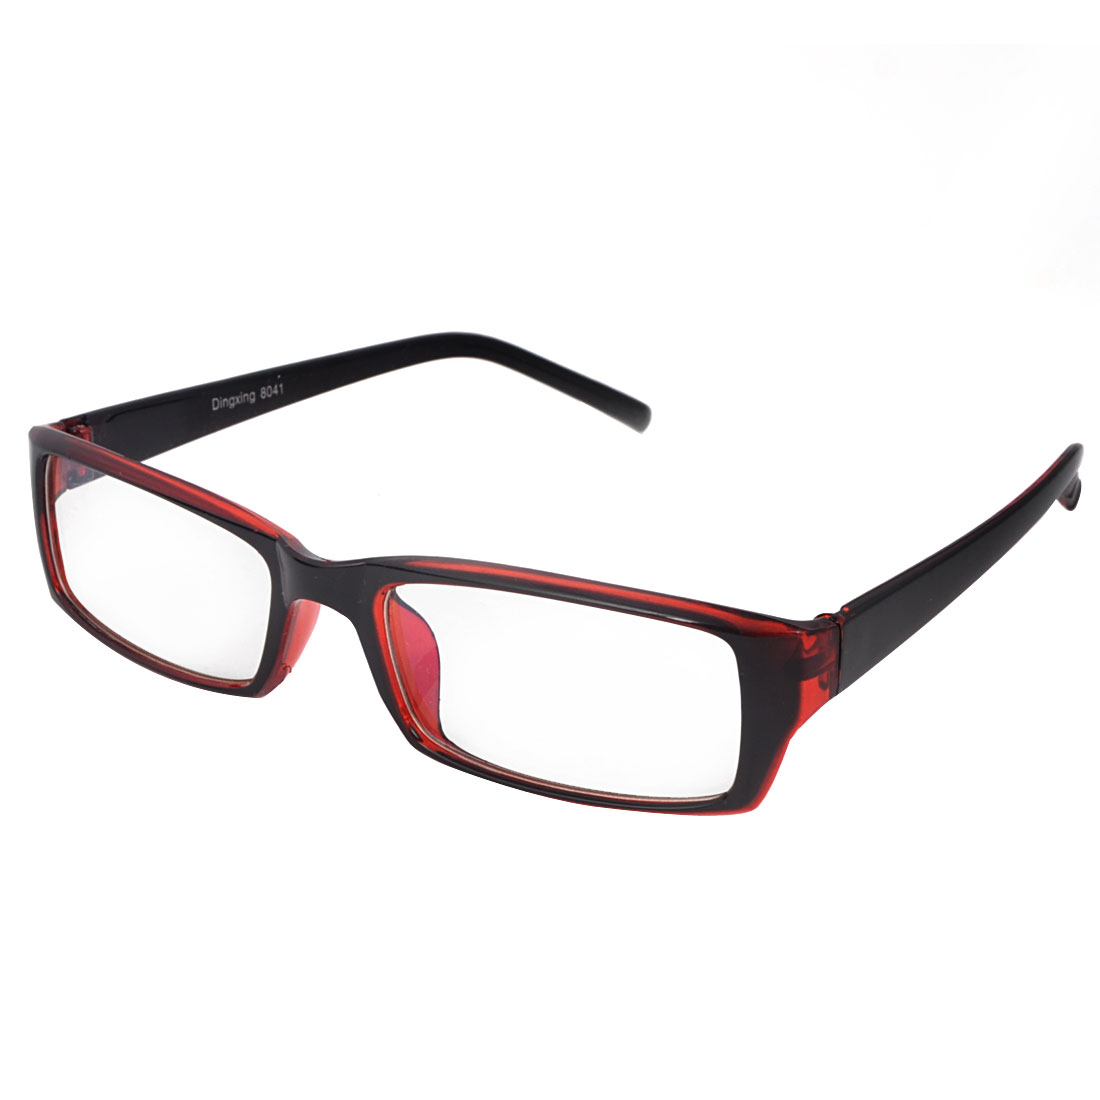 Red Black Plastic Single Bridge MC Lens Plano Glasses Spectacles for Lady